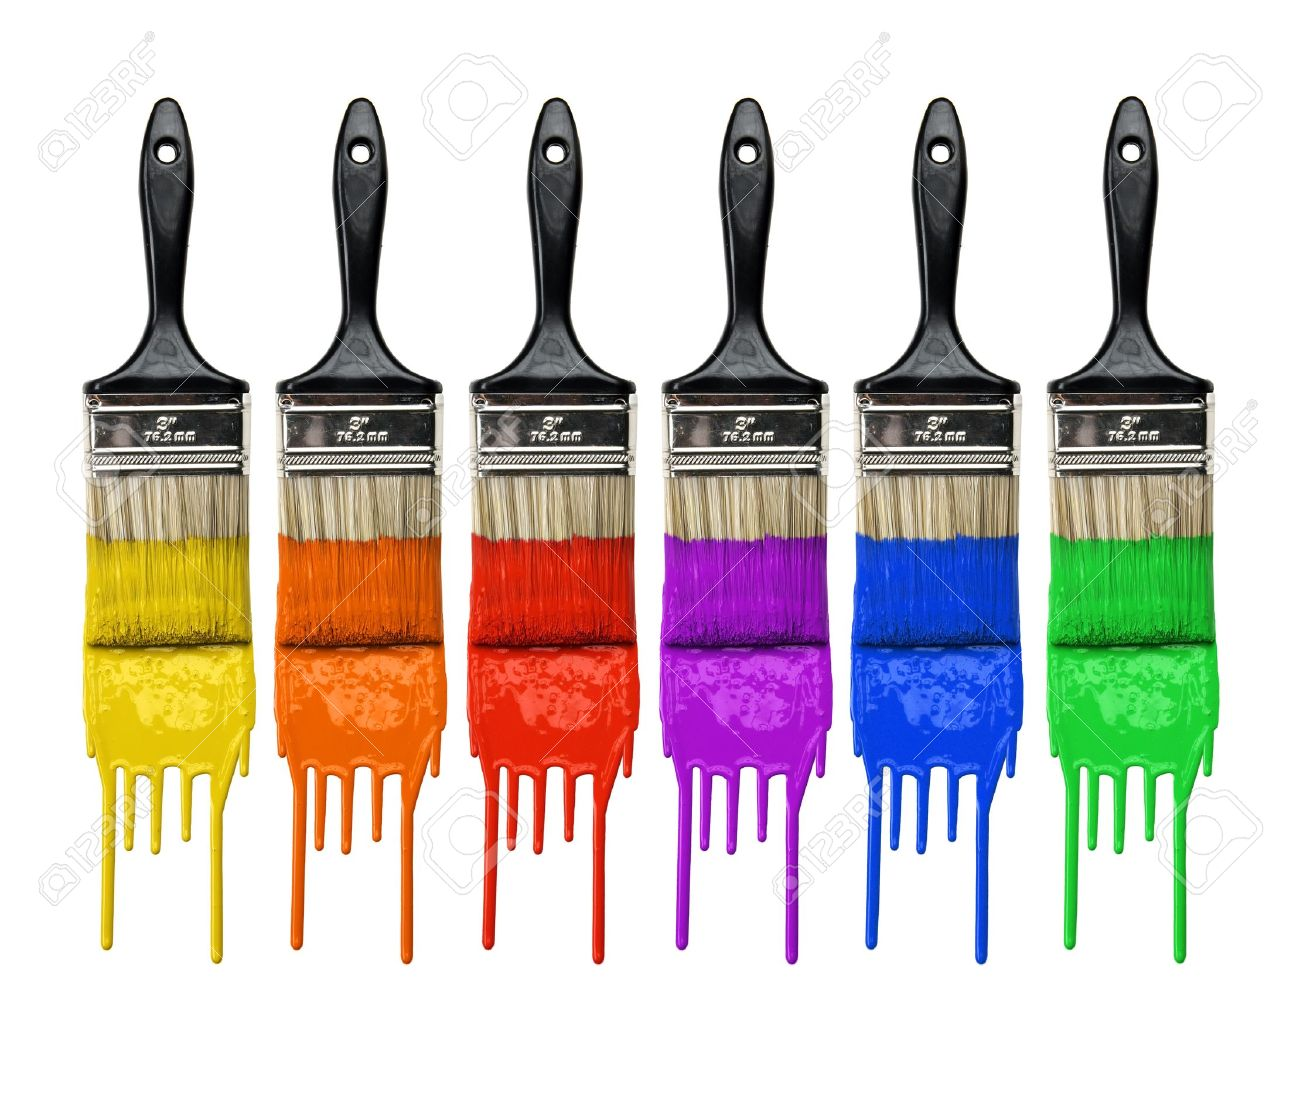 Paintbrushes with dripping paint of different colors isolated over white background Stock Photo - 8204953